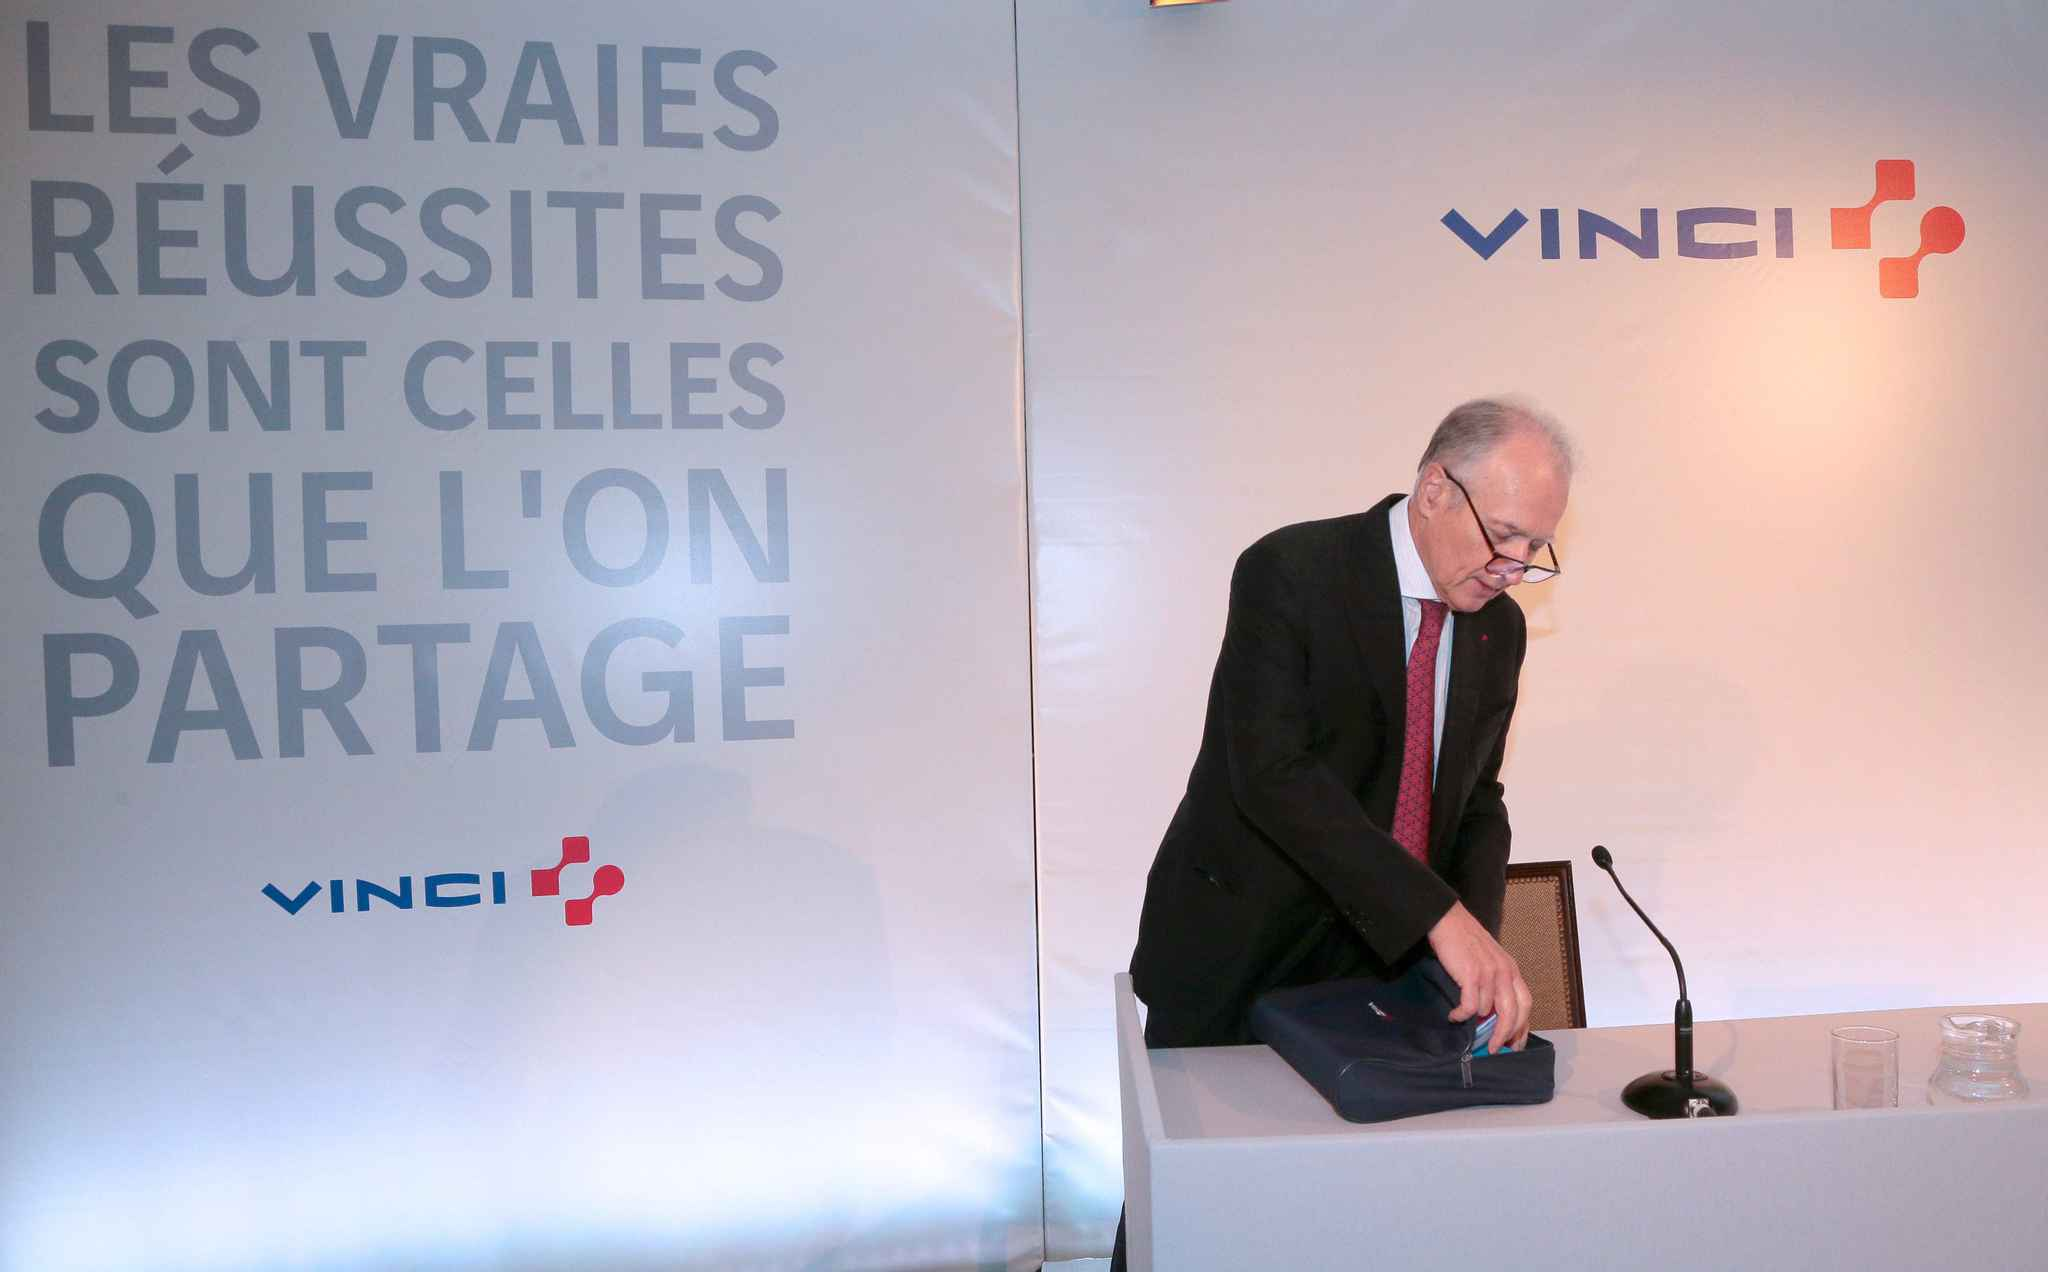 2048x1536-fit_french-concessions-and-construction-company-vinci-ceo-xavier-huillp-xavier-huillard-readies-to-speak